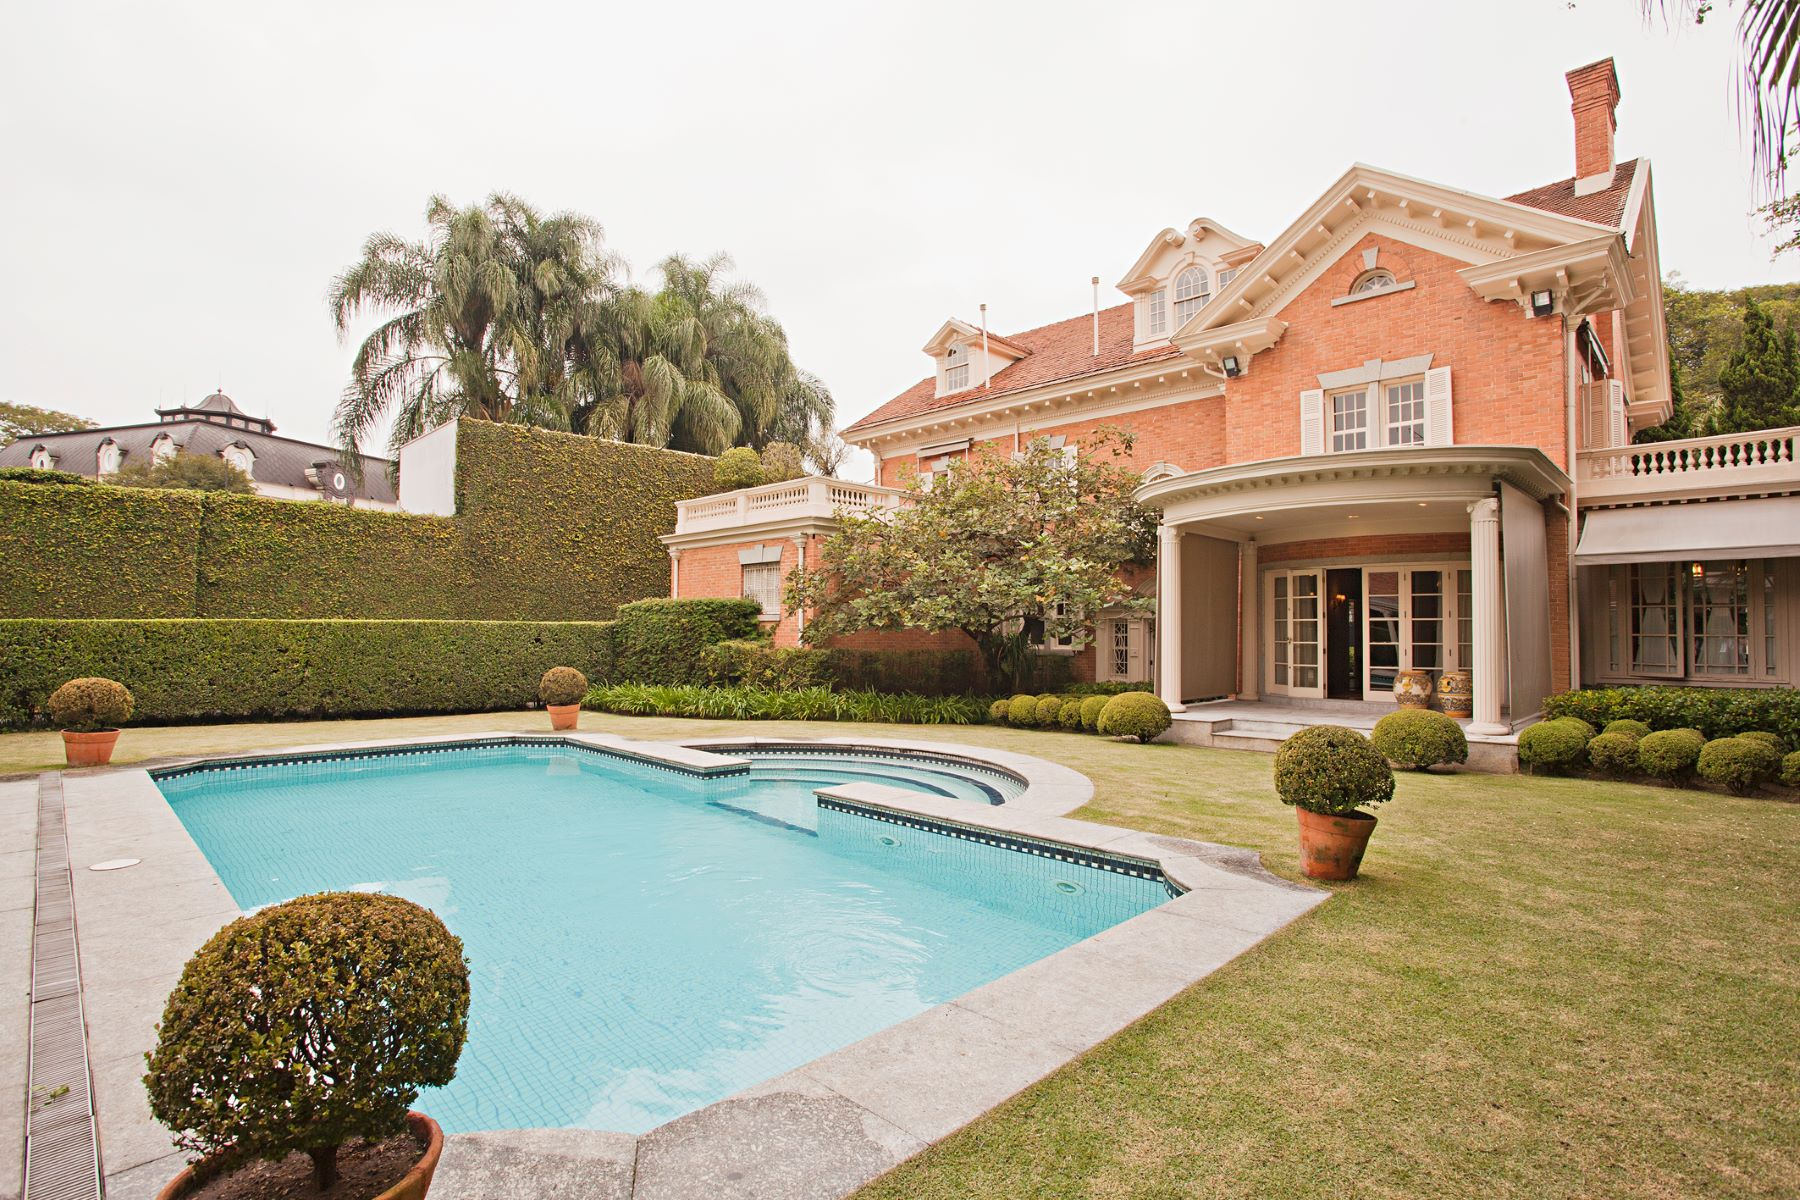 Single Family Home for Sale at Refinement and Extensive Grounds Sao Paulo, Sao Paulo 01437050 Brazil